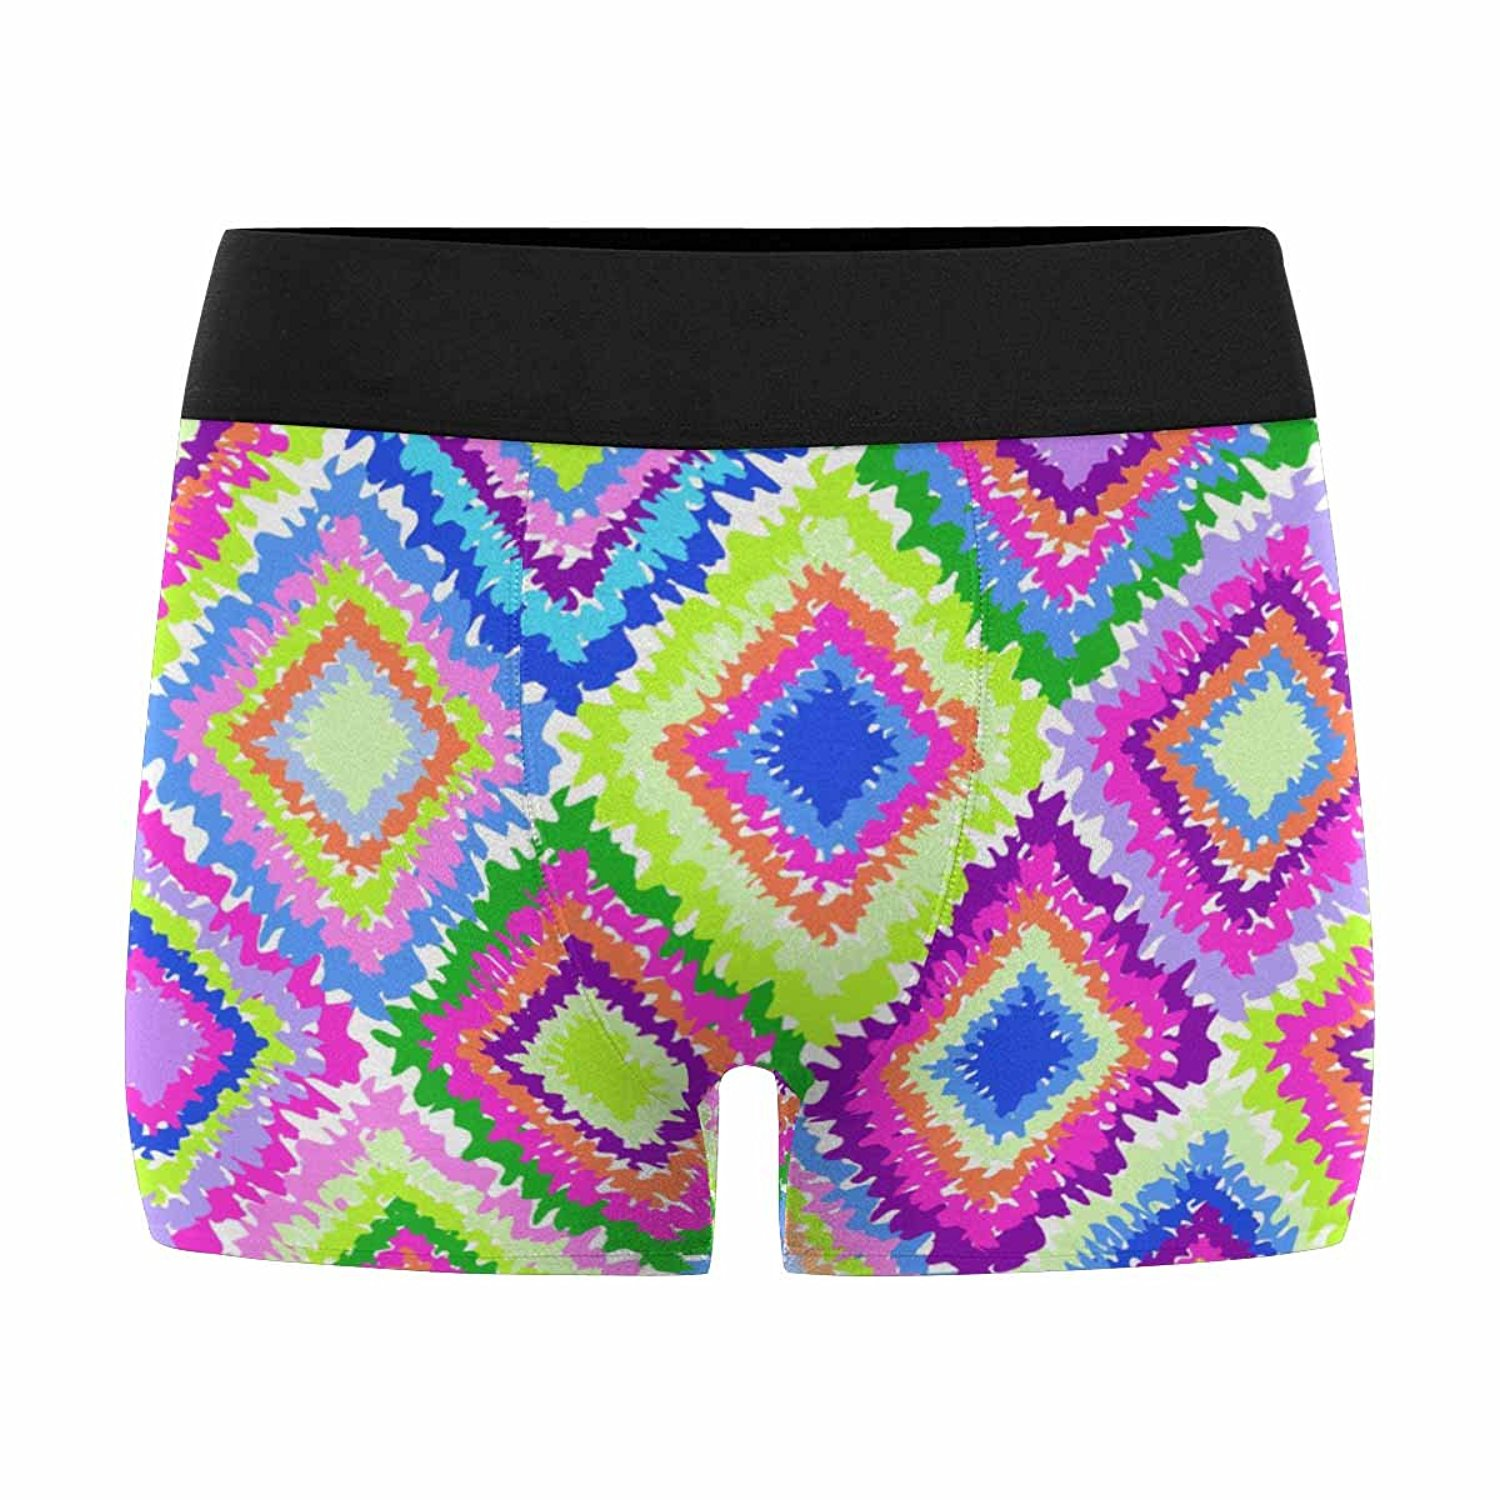 XS-3XL INTERESTPRINT Mens Boxer Briefs Underwear Musical Seamless Grunge Background